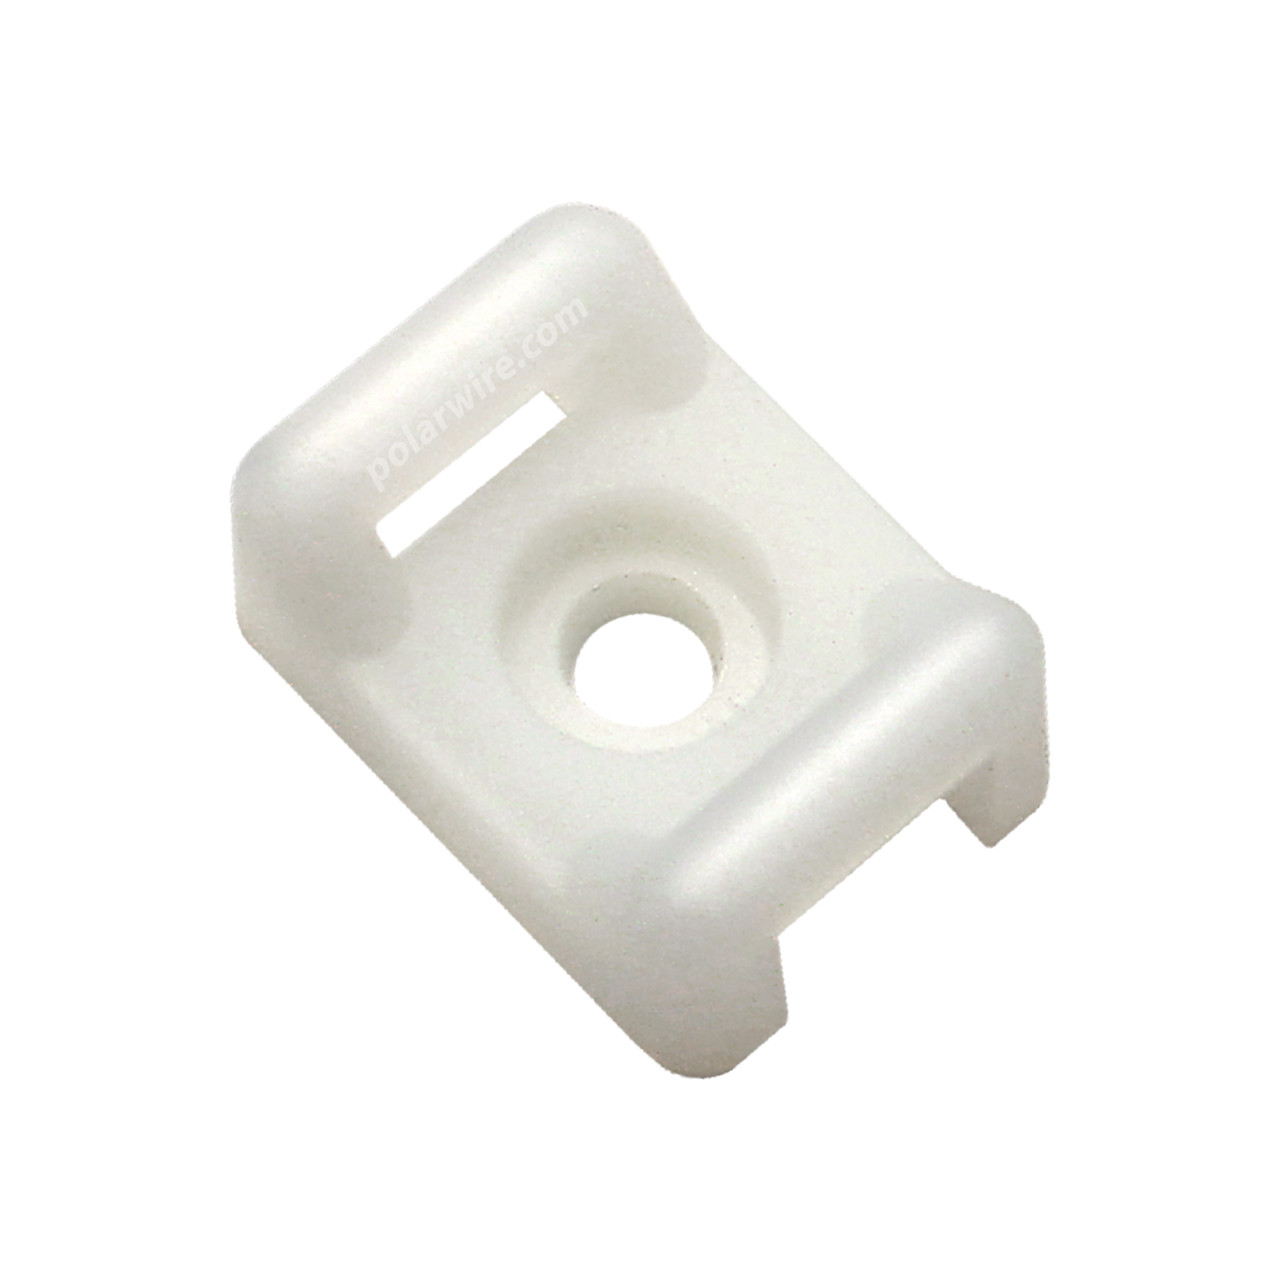 CABLE TIE BASE NATURAL 18-120 LB PULL #8 SCREW MOUNT